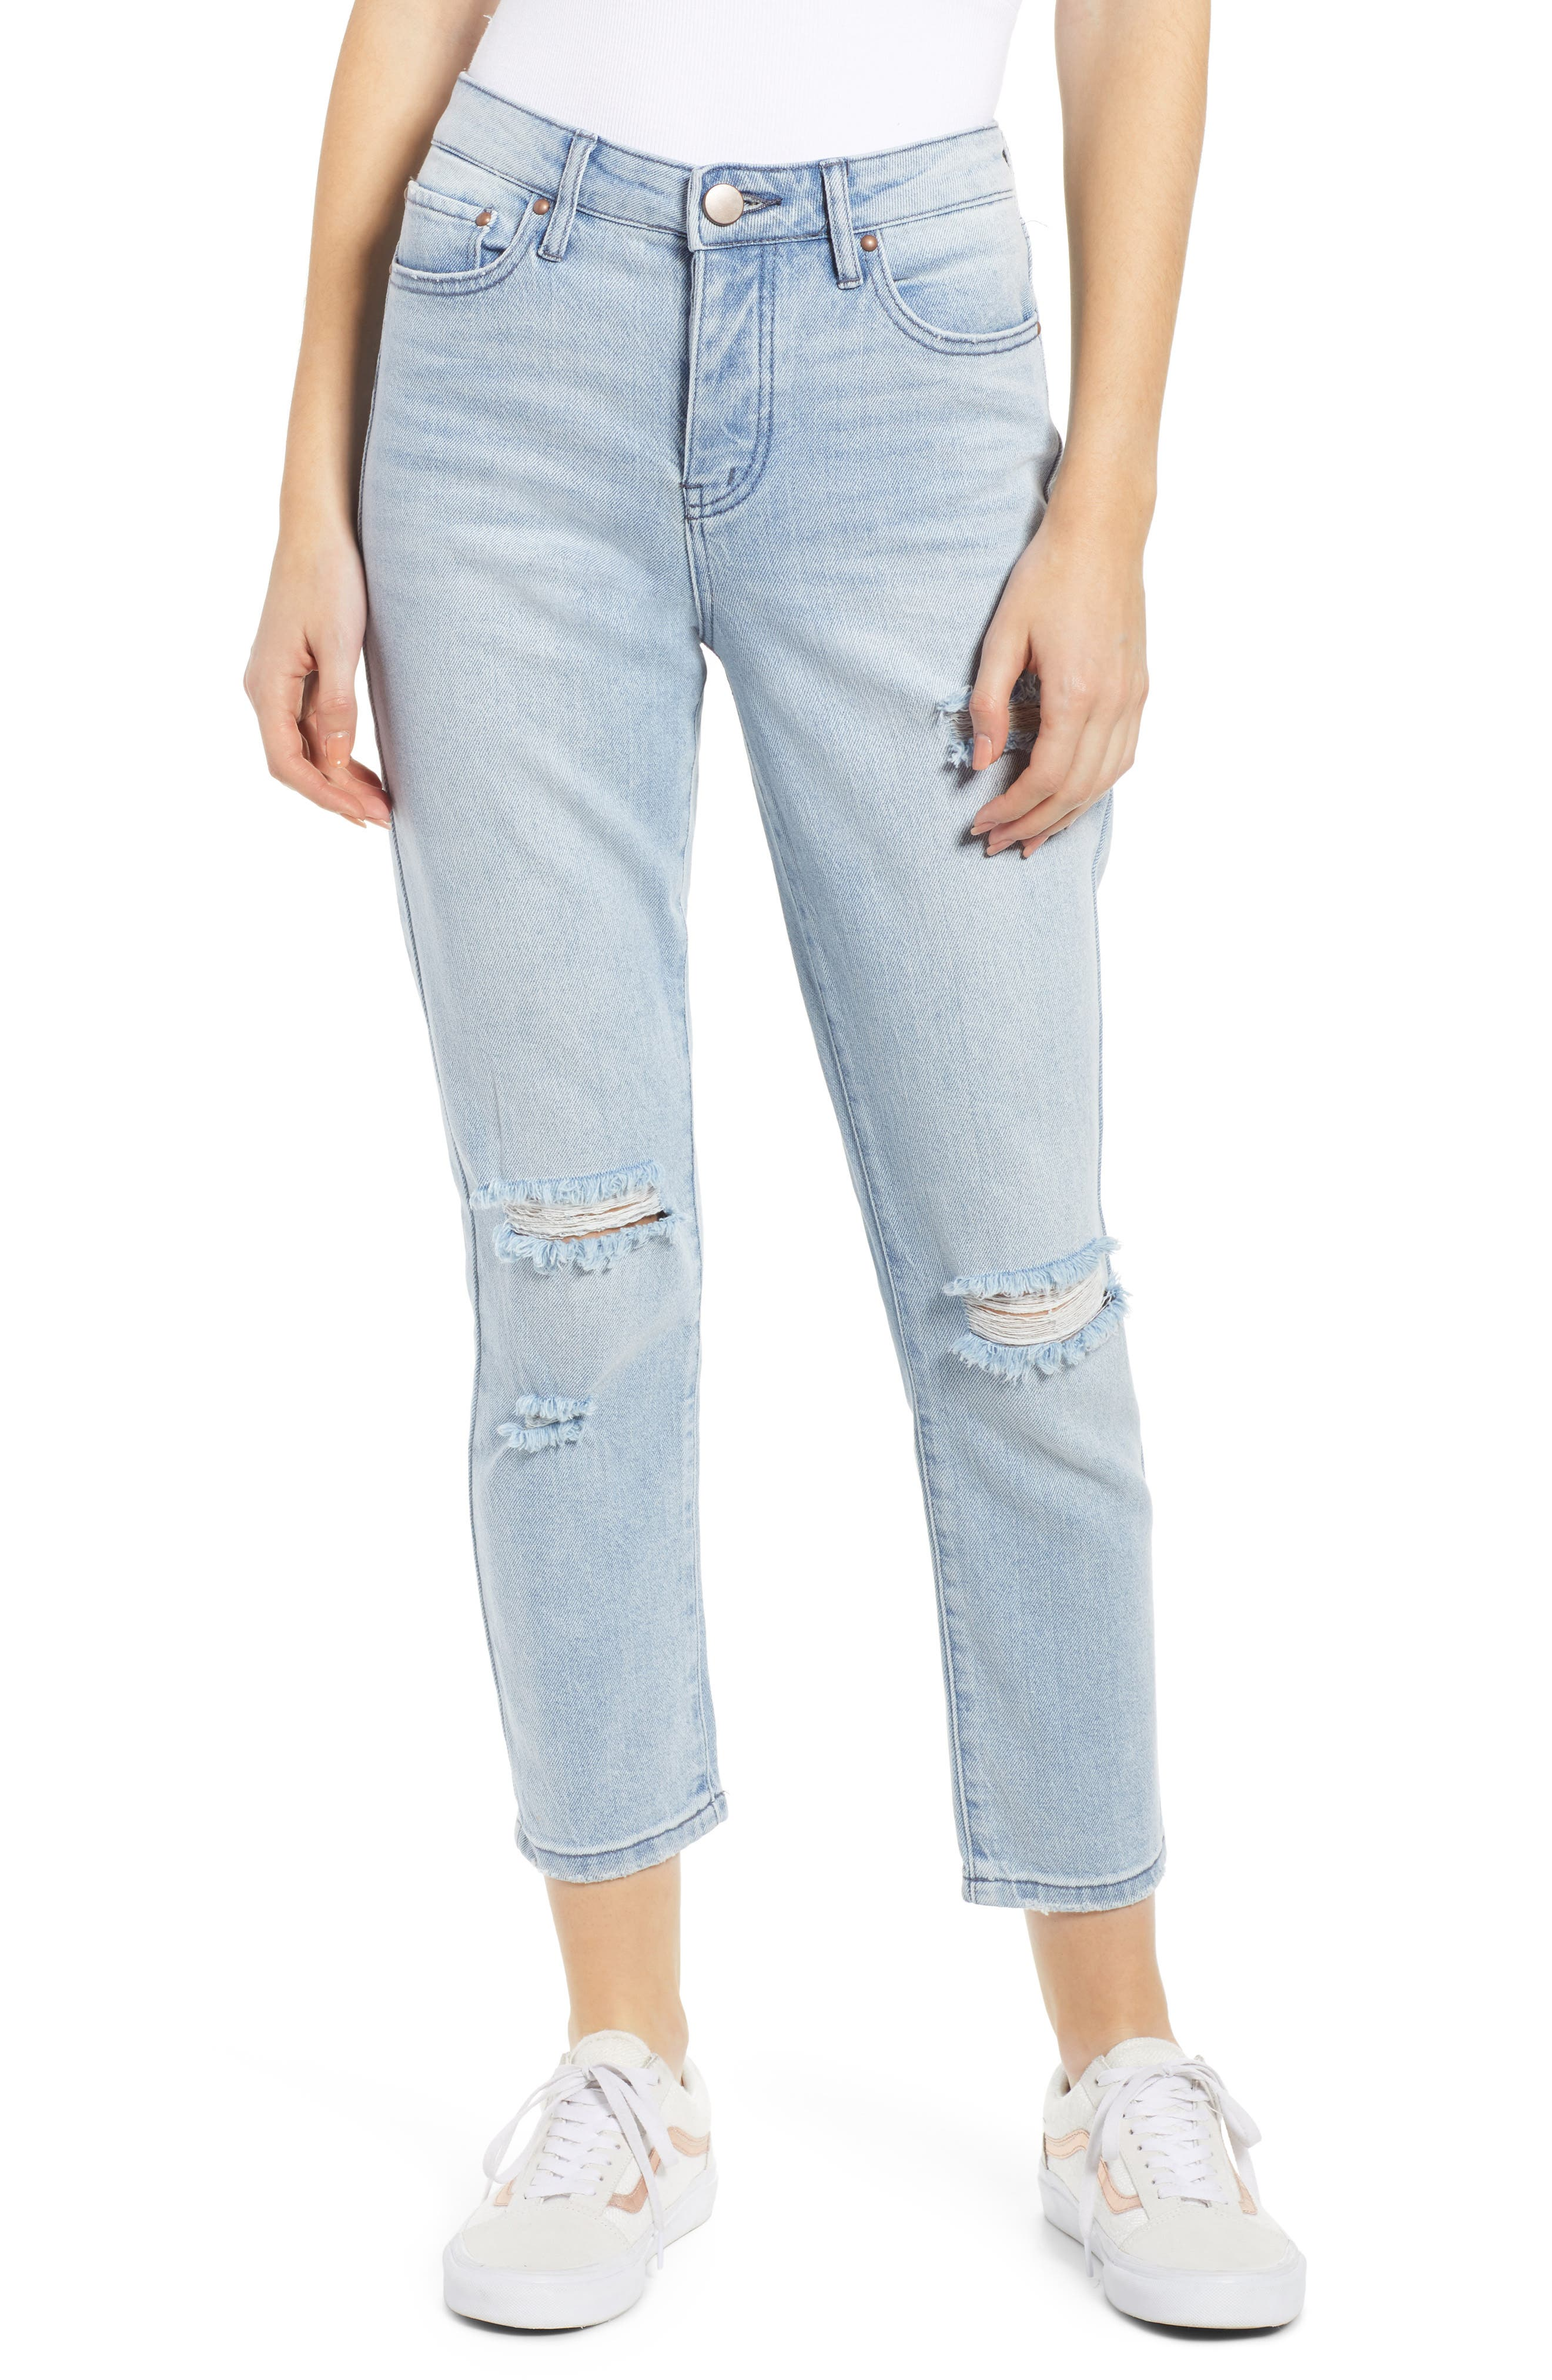 PROSPERITY DENIM Ripped Ankle Straight Leg Jeans, Main, color, LIGHT WASH